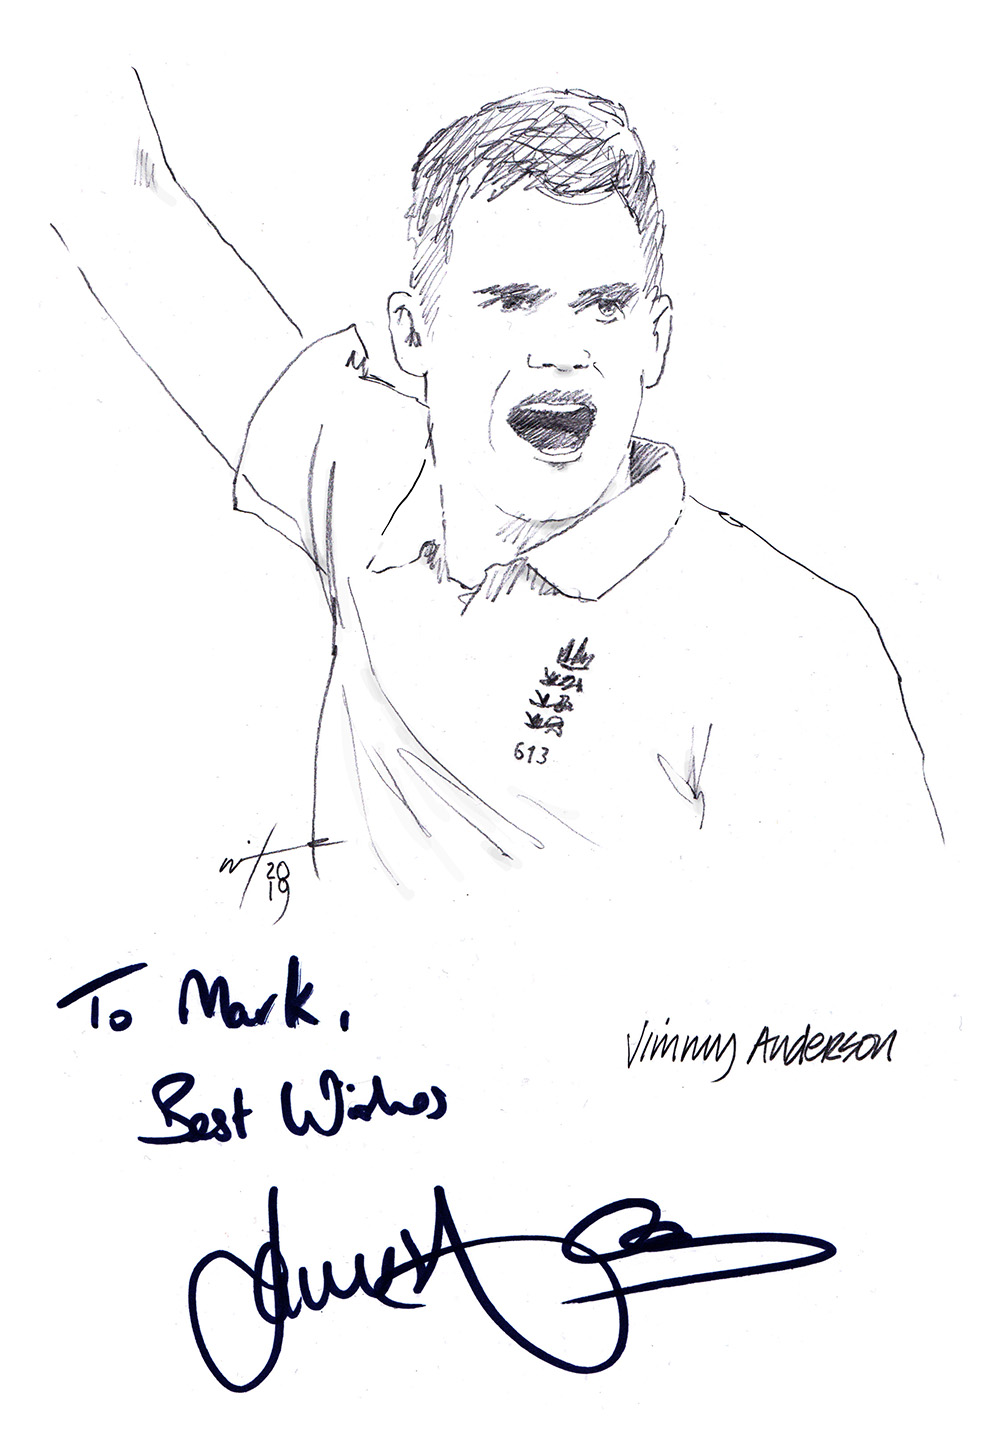 Autogrpahed drawing of cricketer Jimmy Anderson